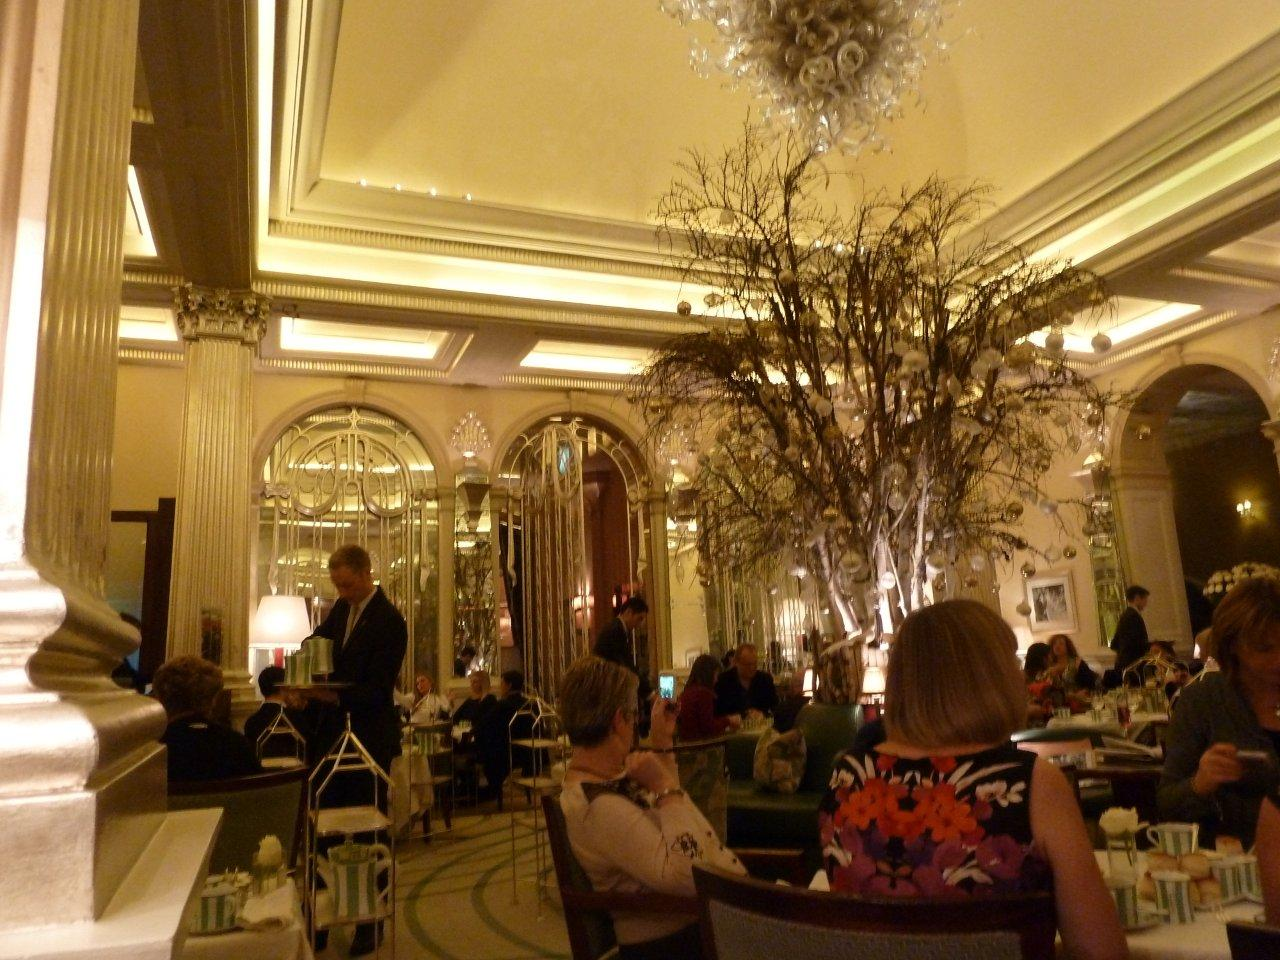 Claridges Foyer Room : Zest cooking afternoon tea at the claridges hotel london